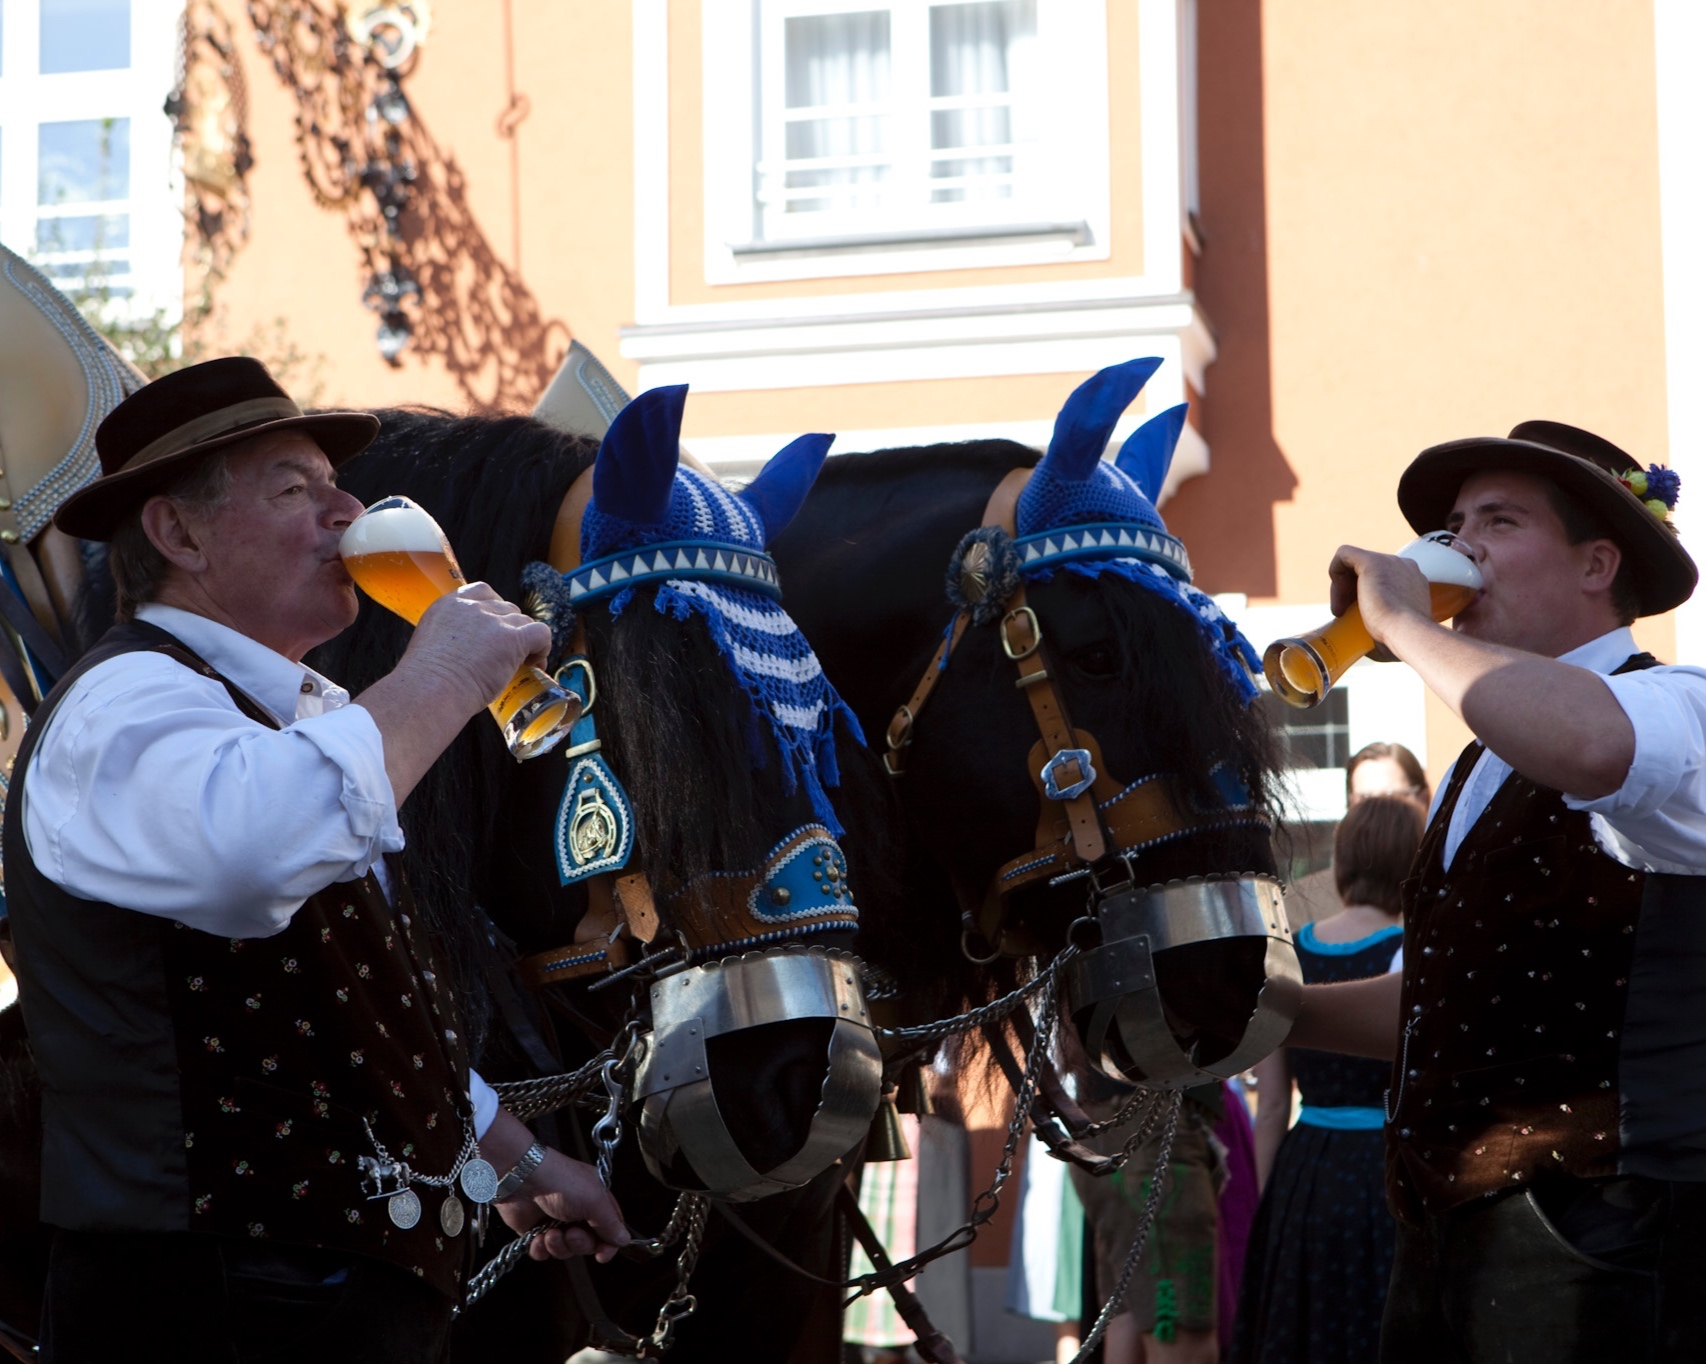 Two carriage drivers drinking Erdinger Weissbier after their delivery